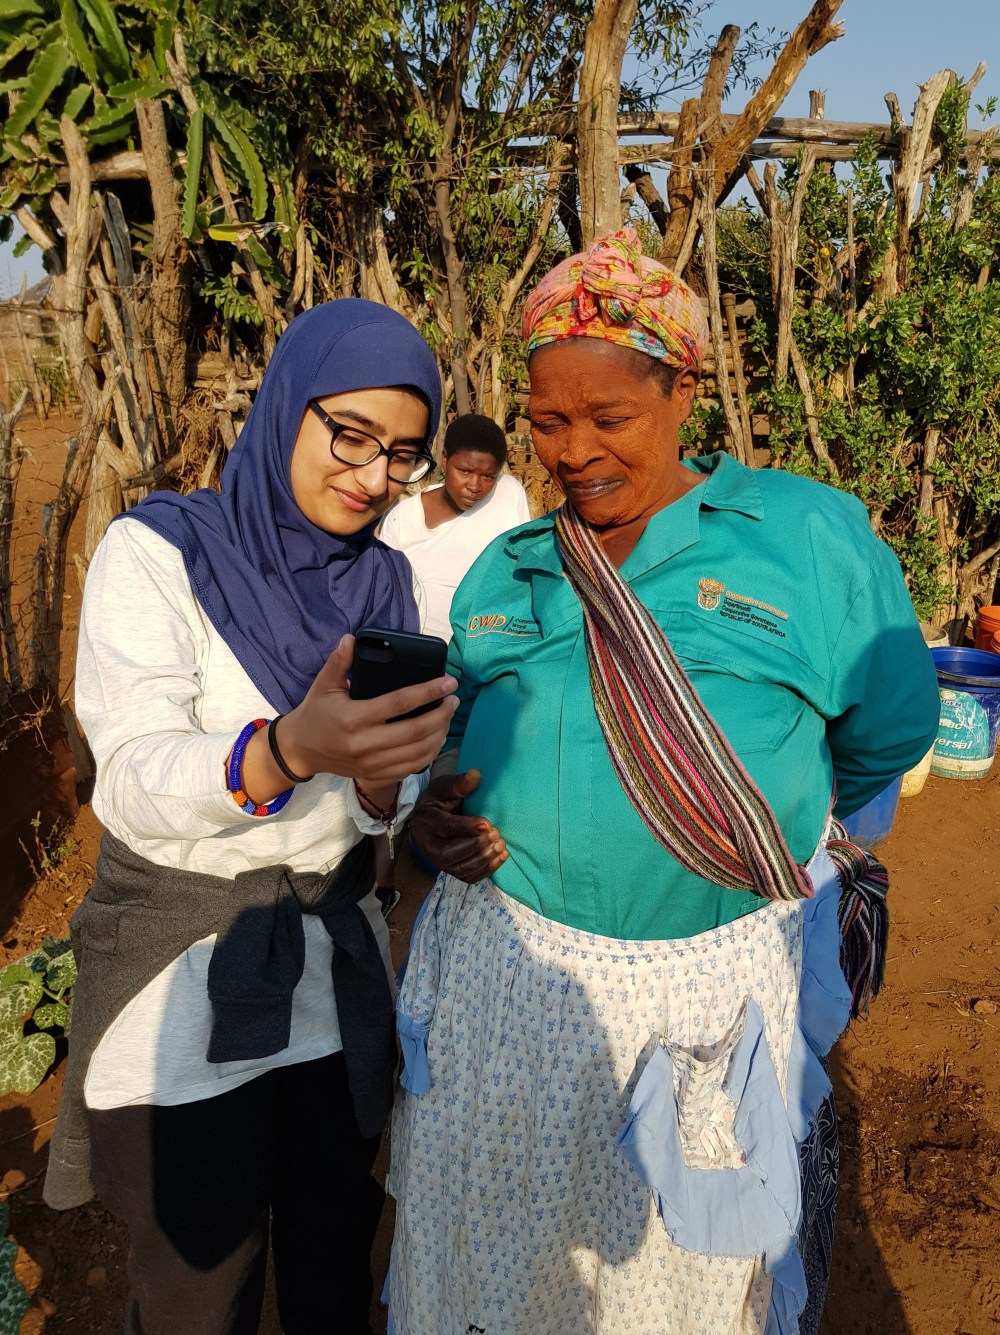 A young woman showing an older woman something on her phone